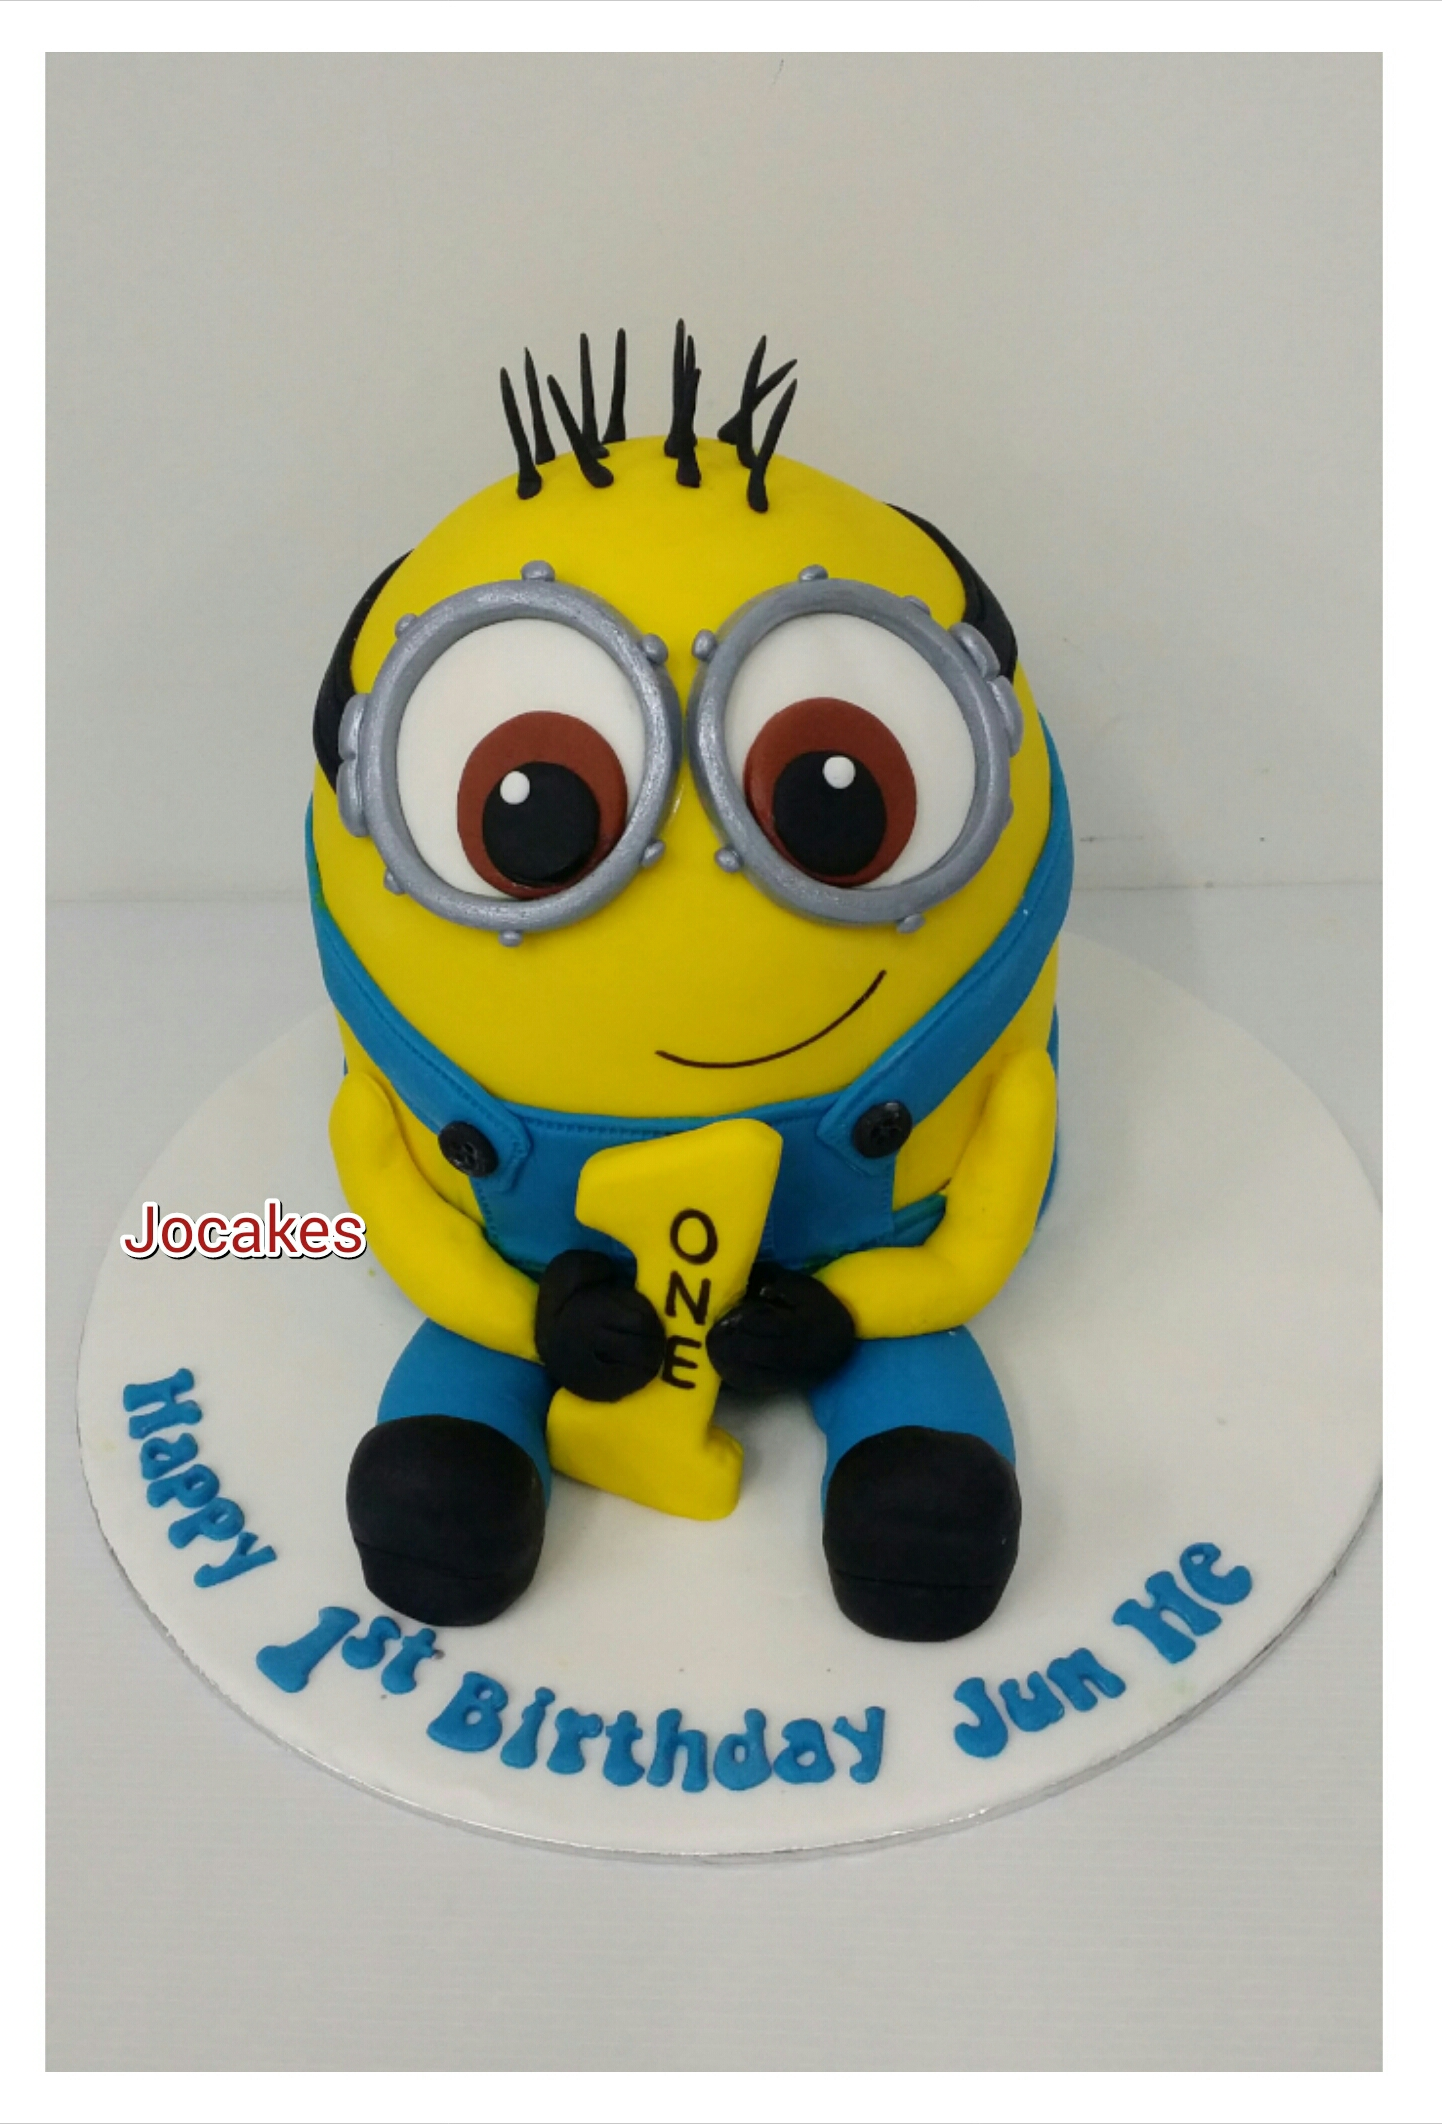 Swell Library Of Minion Birthday Cake Free Stock Files Funny Birthday Cards Online Inifofree Goldxyz